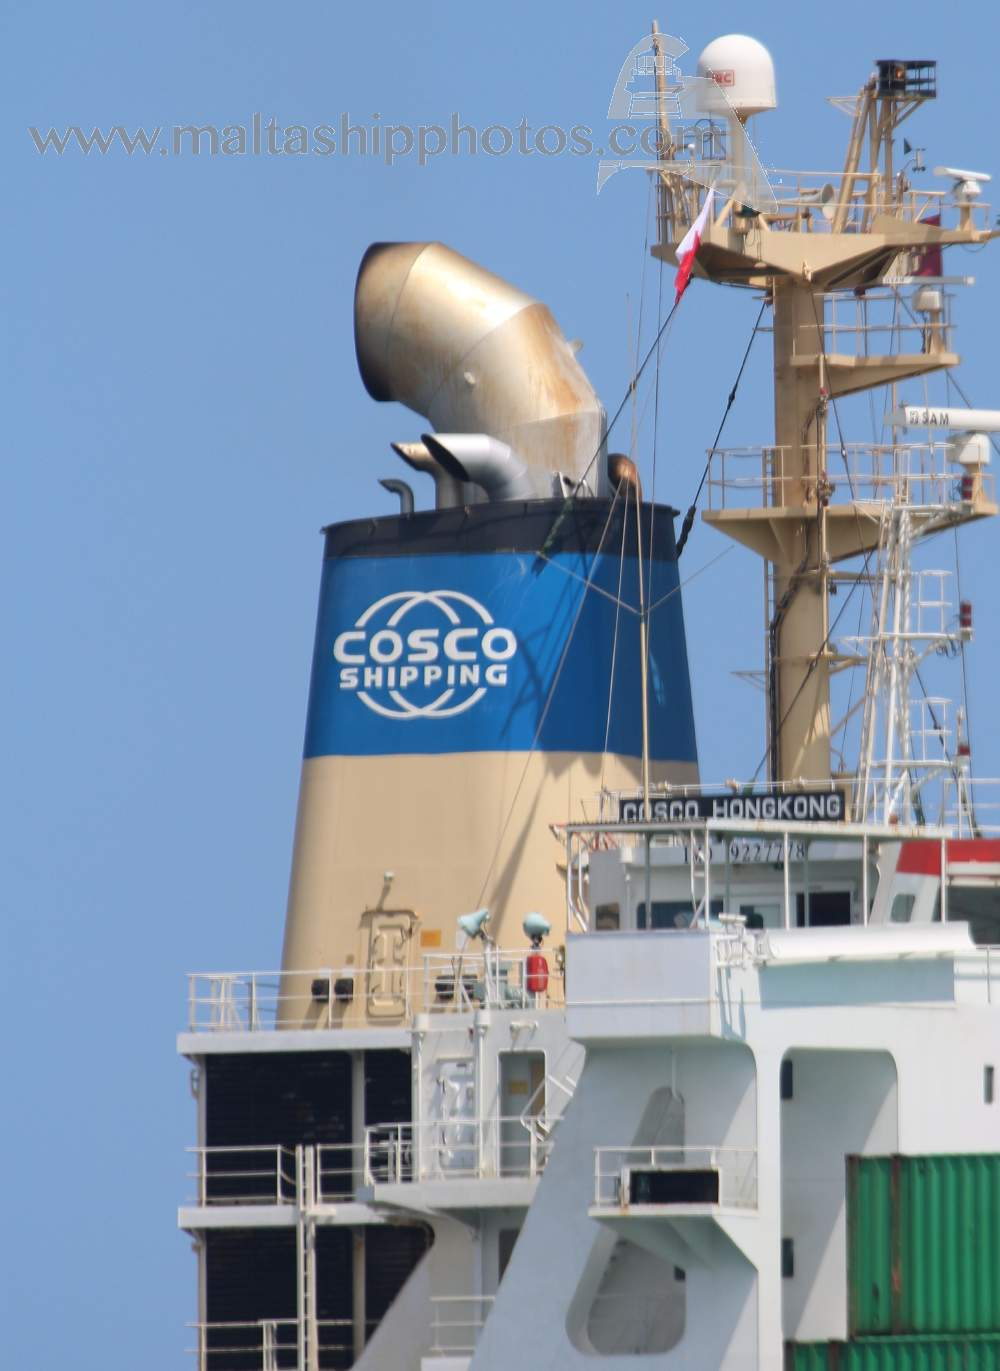 COSCO Shipping, China - 19.06.2017